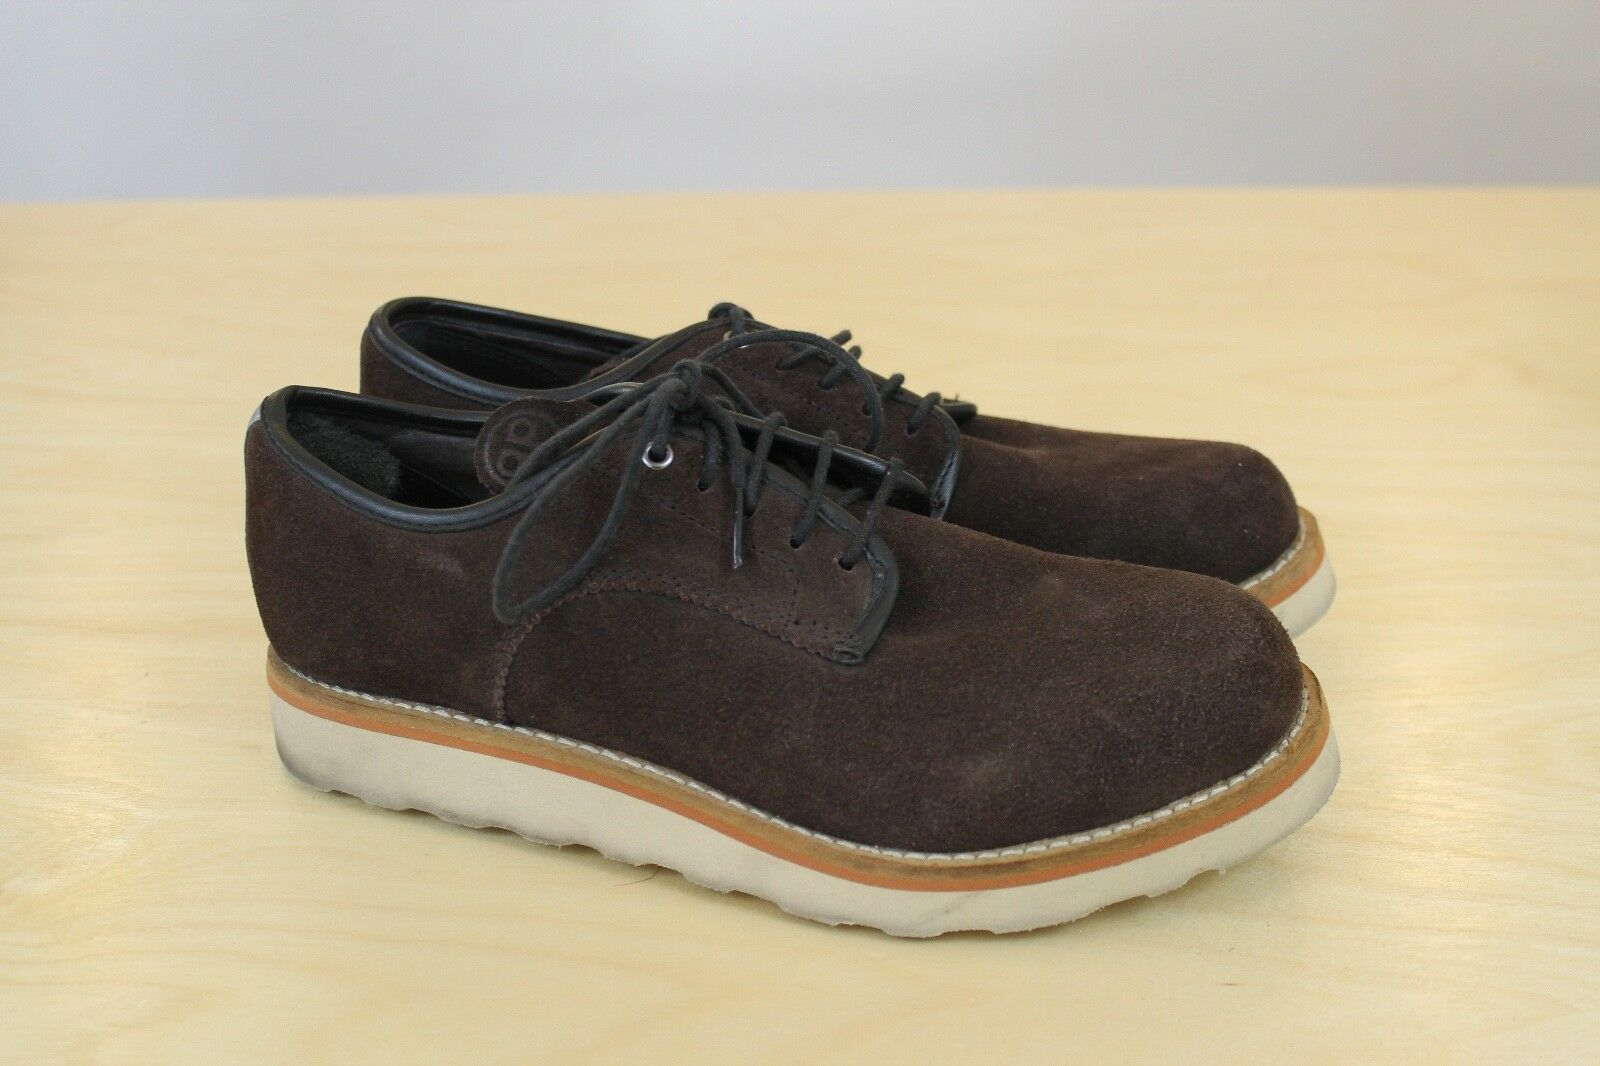 Quoc Pham Derby Cycling shoes 7.5 Mens Casual Commuter Brown Suede SPD 40.5 EU